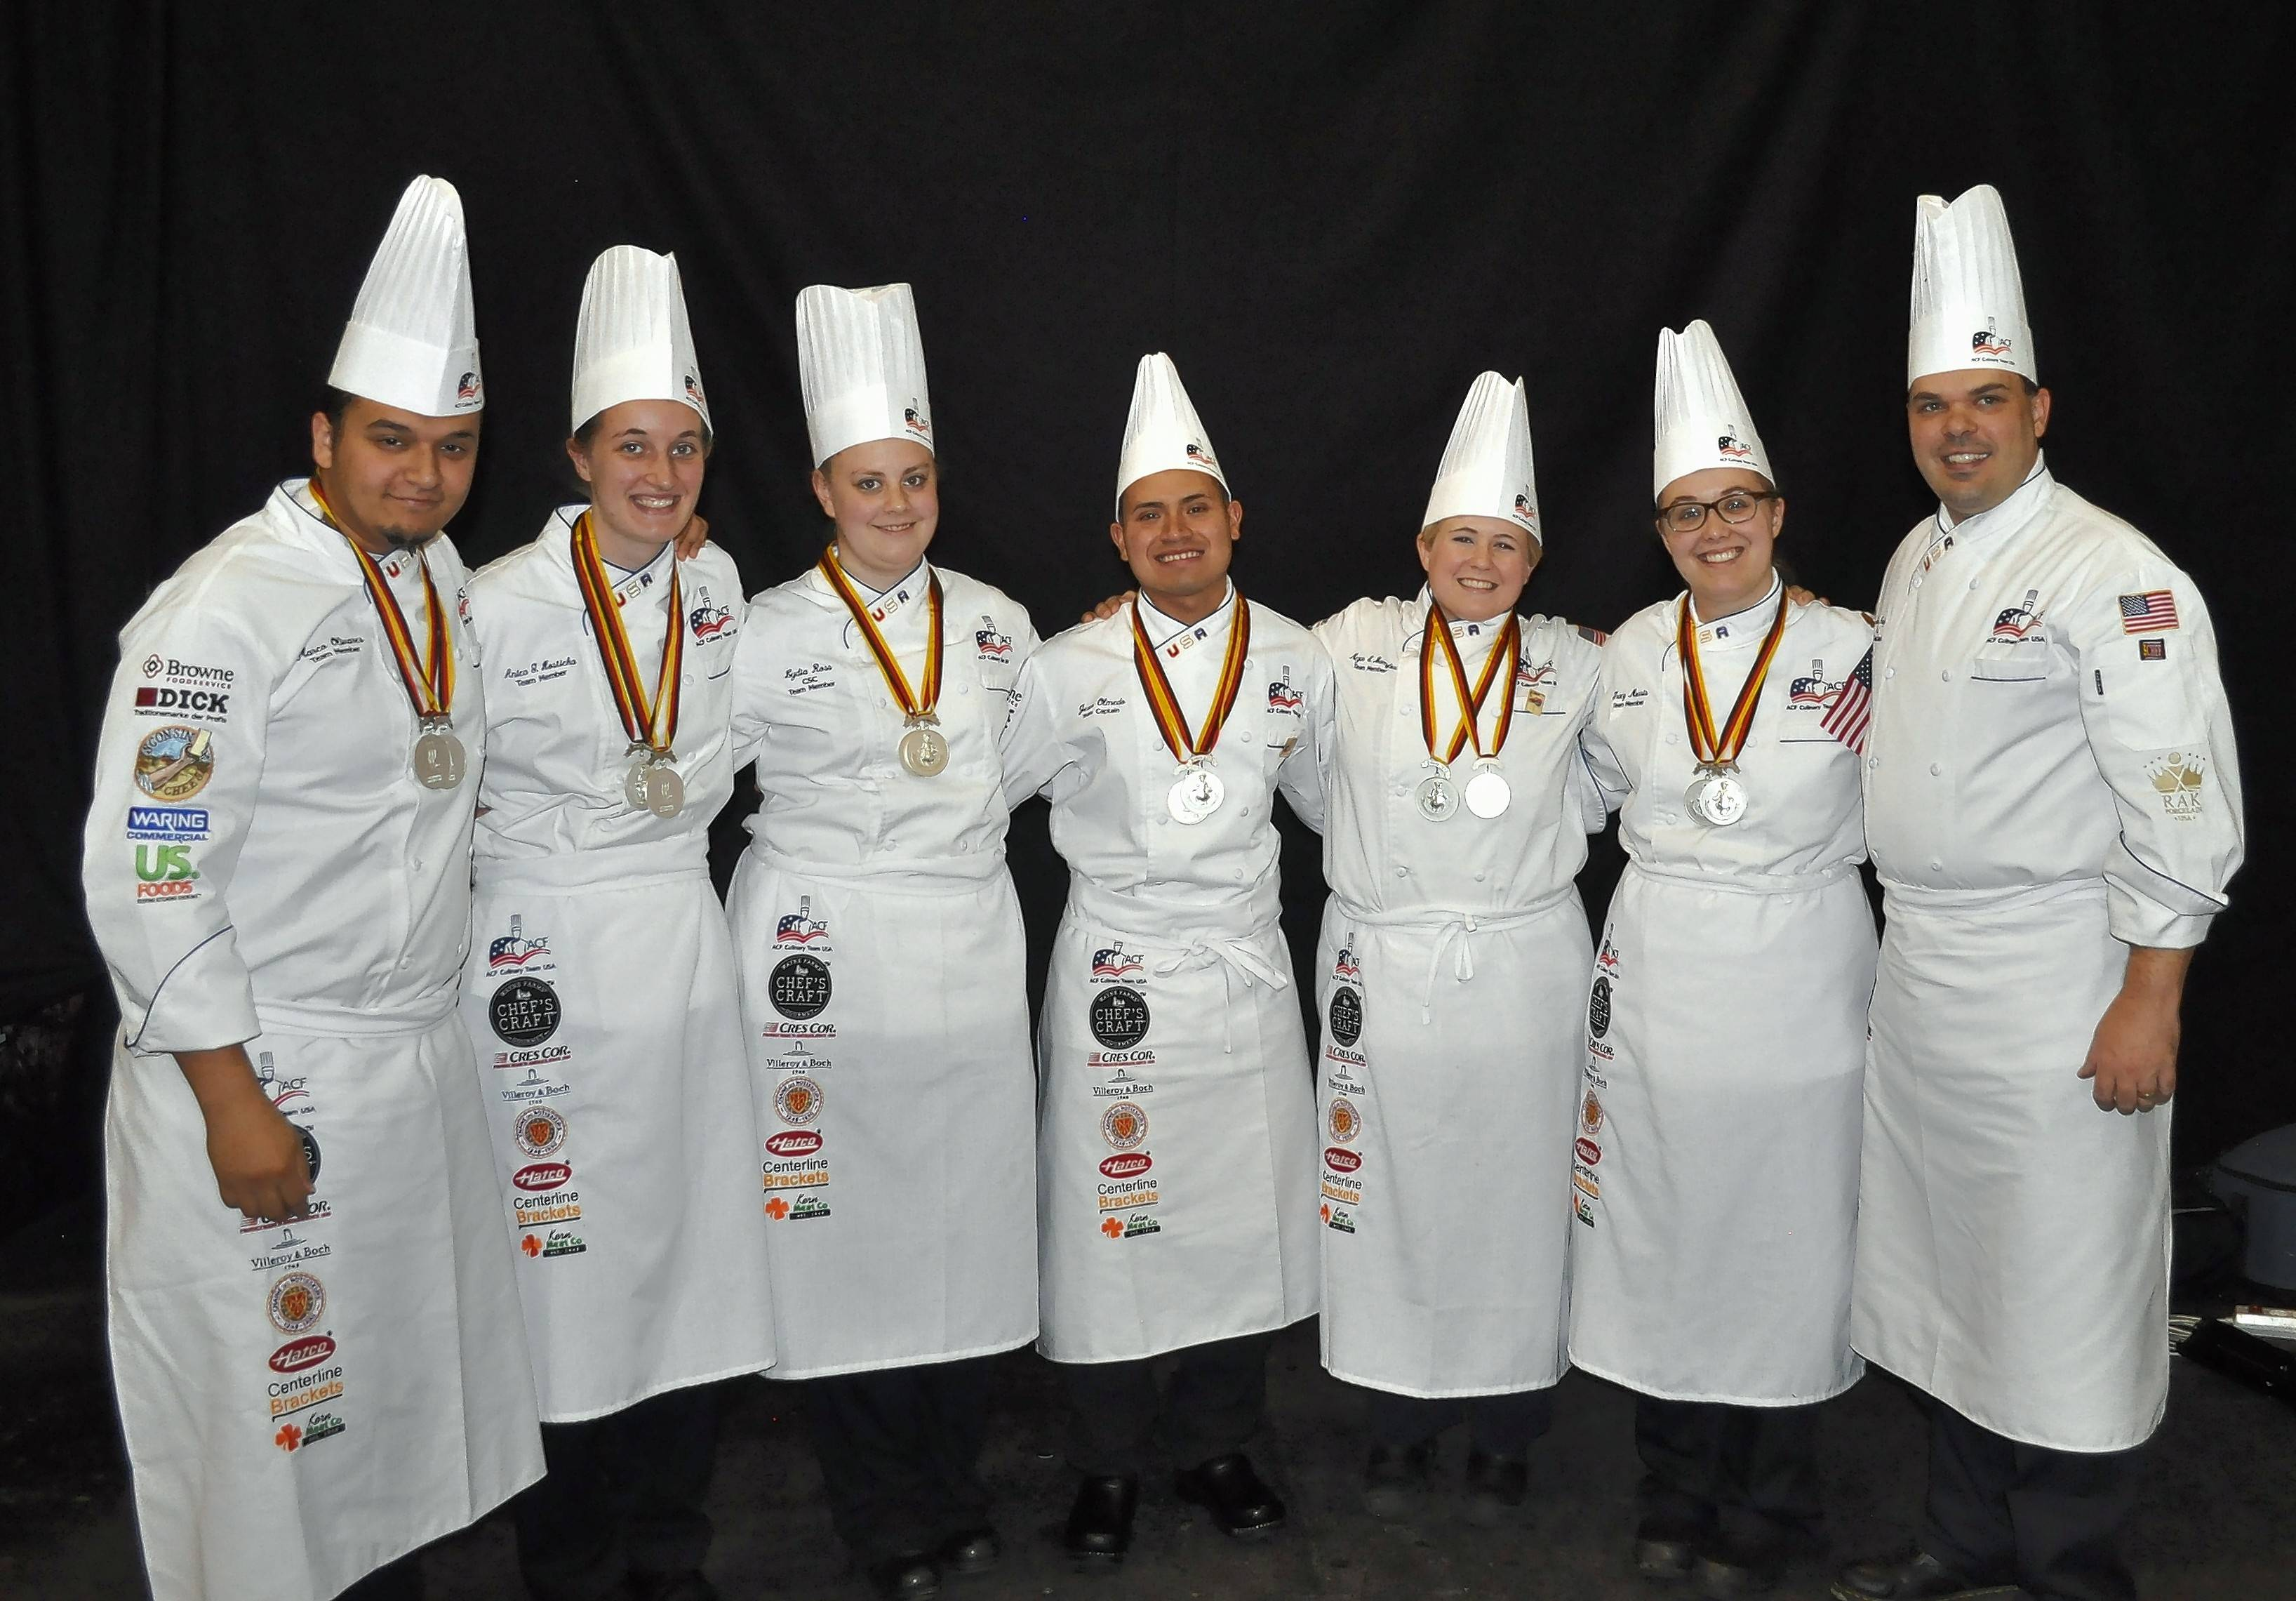 Anica Hosticka, second from left, competed this year on the 2016 ACF U.S. Youth Culinary Olympic Team: Marco Olivares, from left, Hosticka, Lydia Ross, Jesus Olmedo, Megan Bamford, Tracy Morris and Coach Shawn Culp. Stafford DeCambra, not pictured, served as team manager.